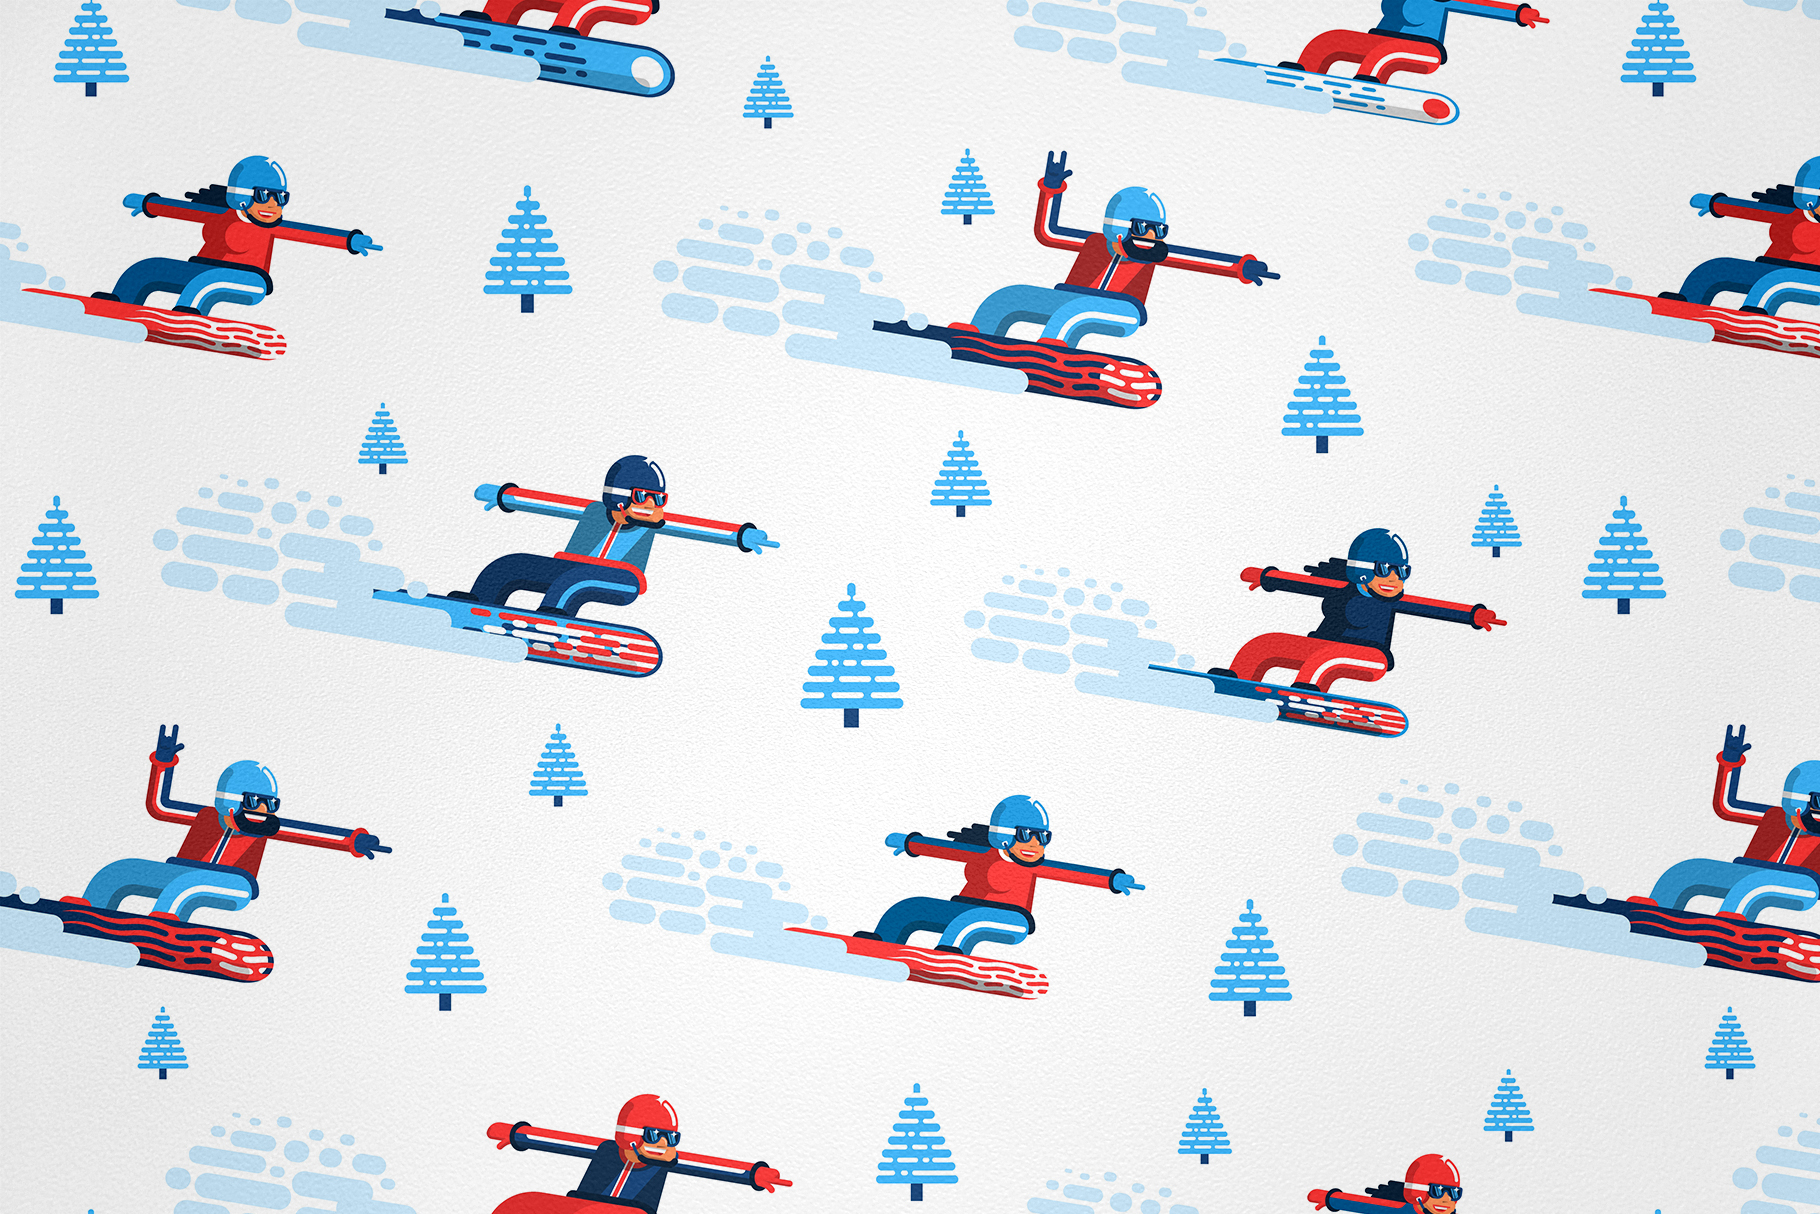 Snowboarding People example image 6